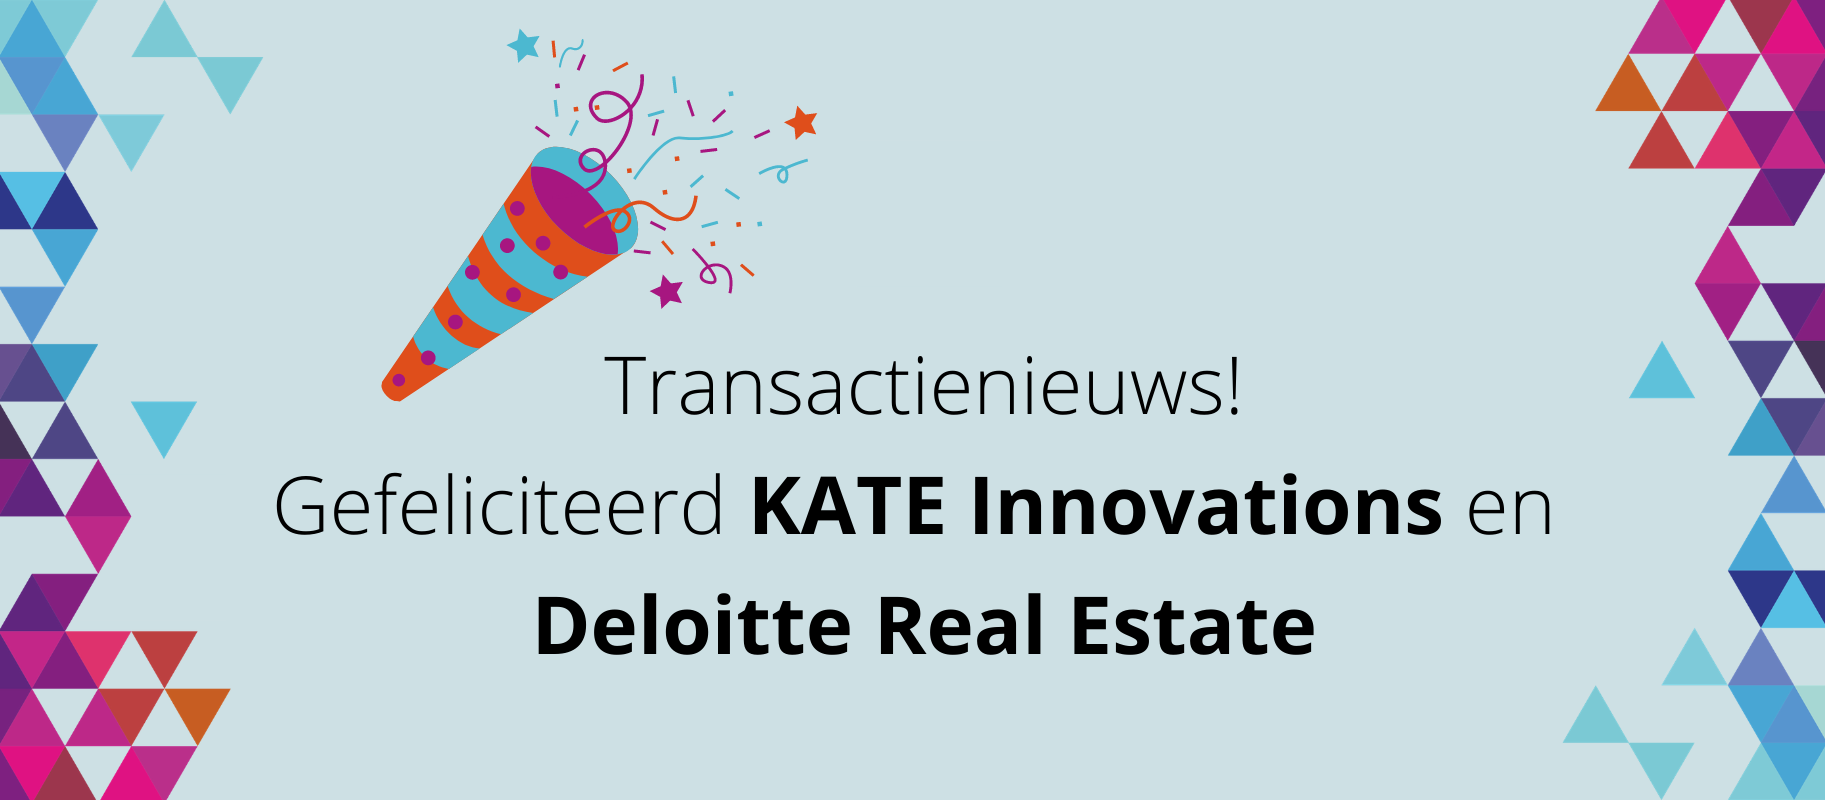 KATE Innovations neemt datadeelplatform AXIOM over van Deloitte